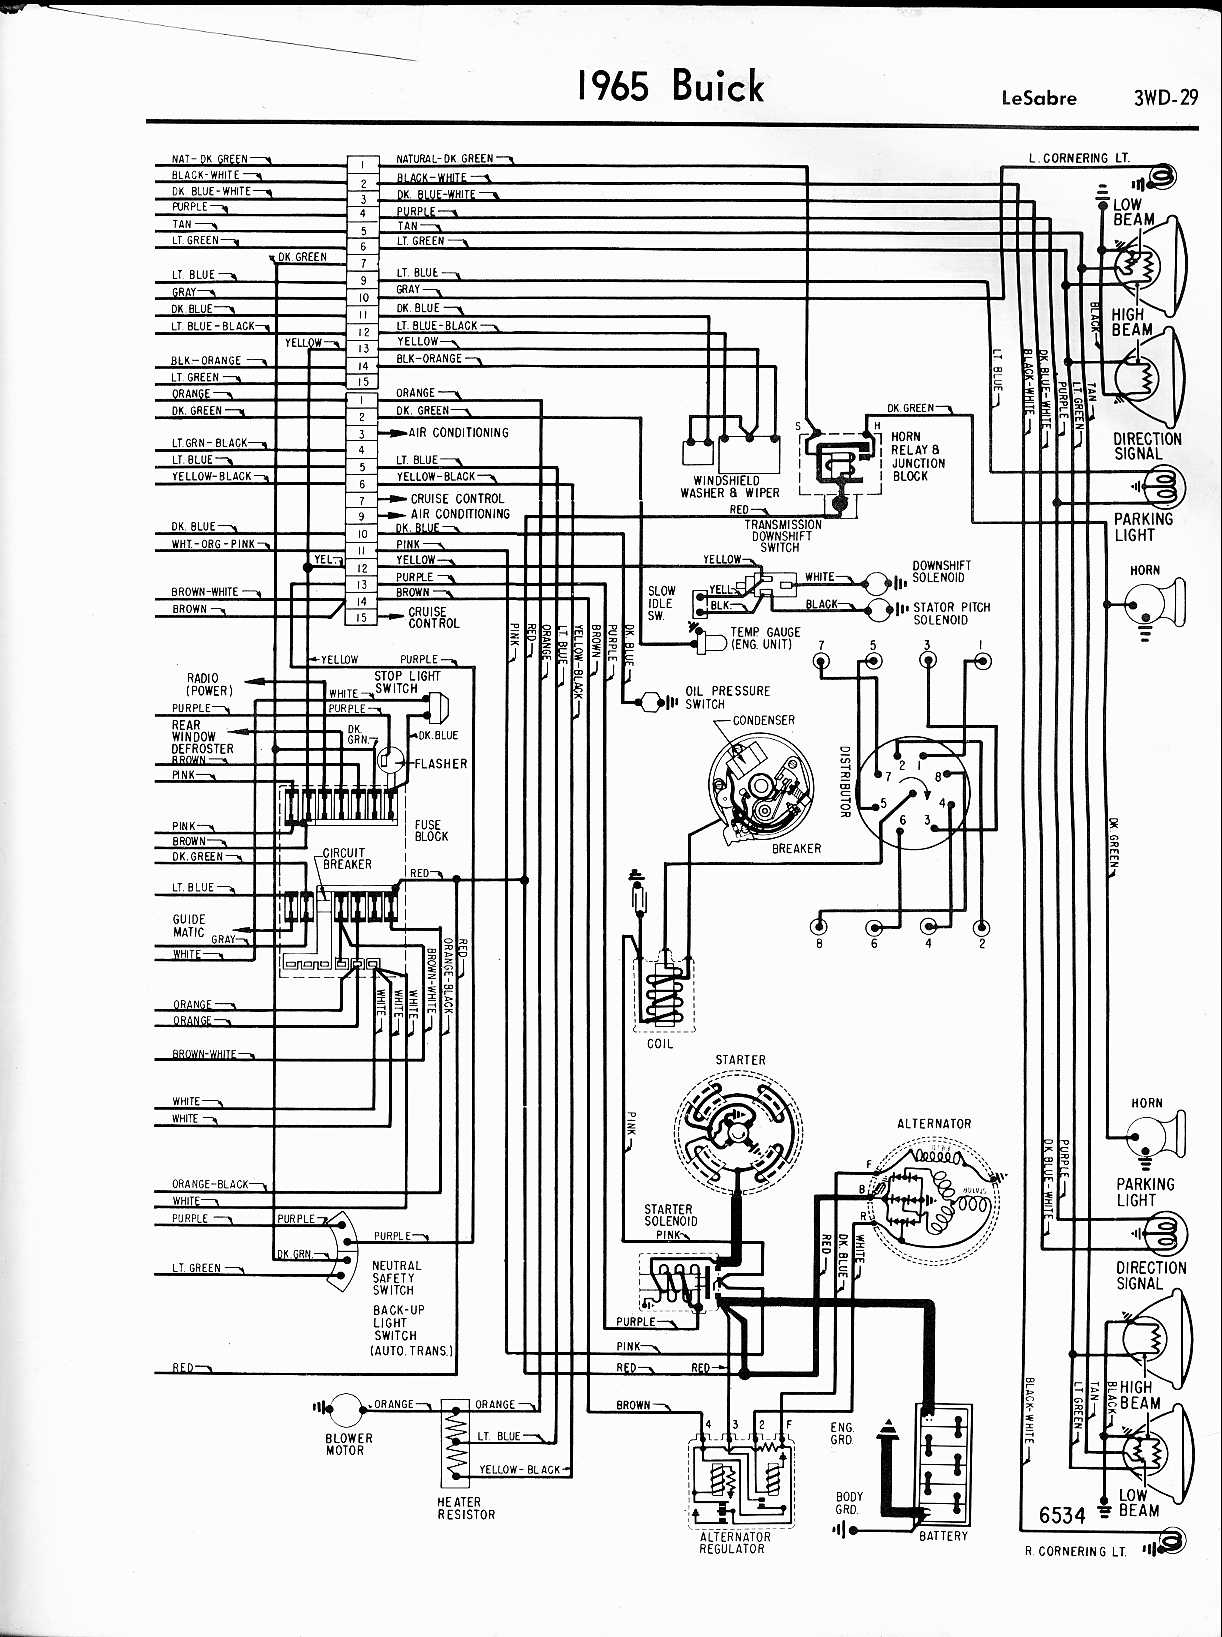 2000 buick regal window wiring diagram